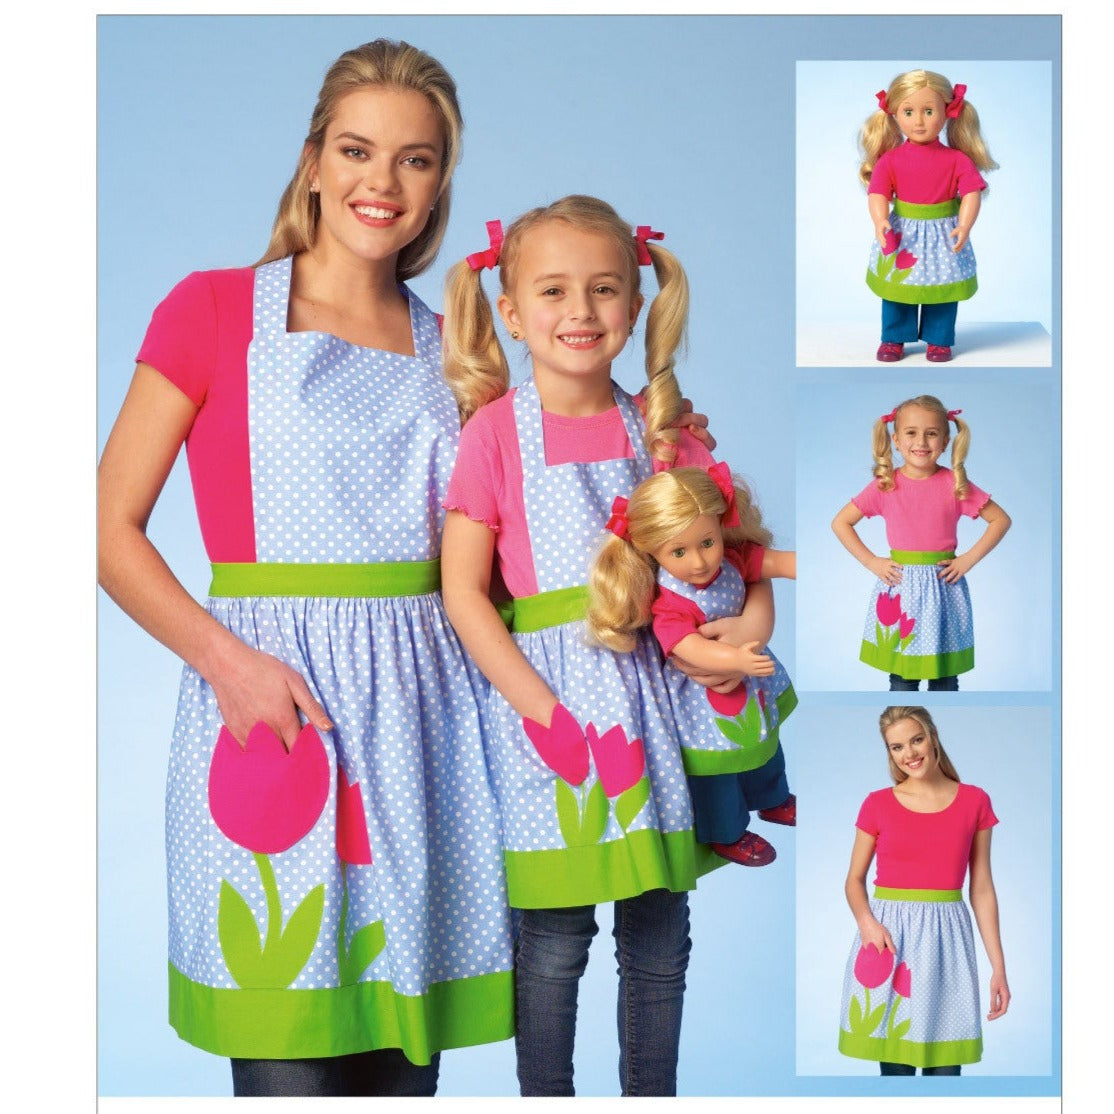 K4105 Misses' /Girl's/Doll's Aprons